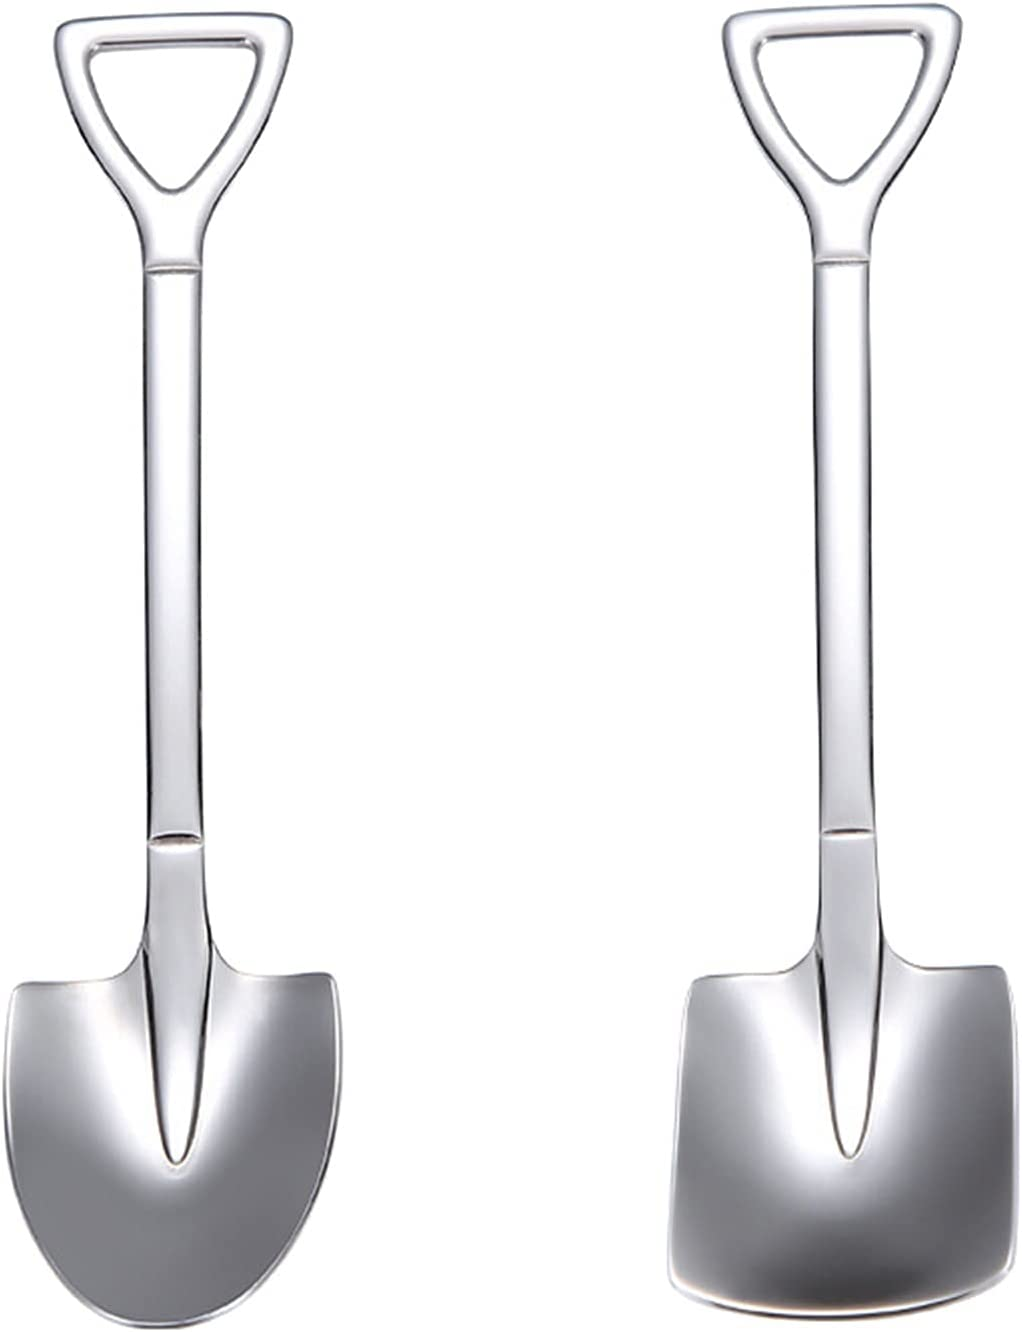 Cooking spoon 2 Pack Stainless Steel 5 ☆ popular Many popular brands S Home Spoon Shovel Dessert